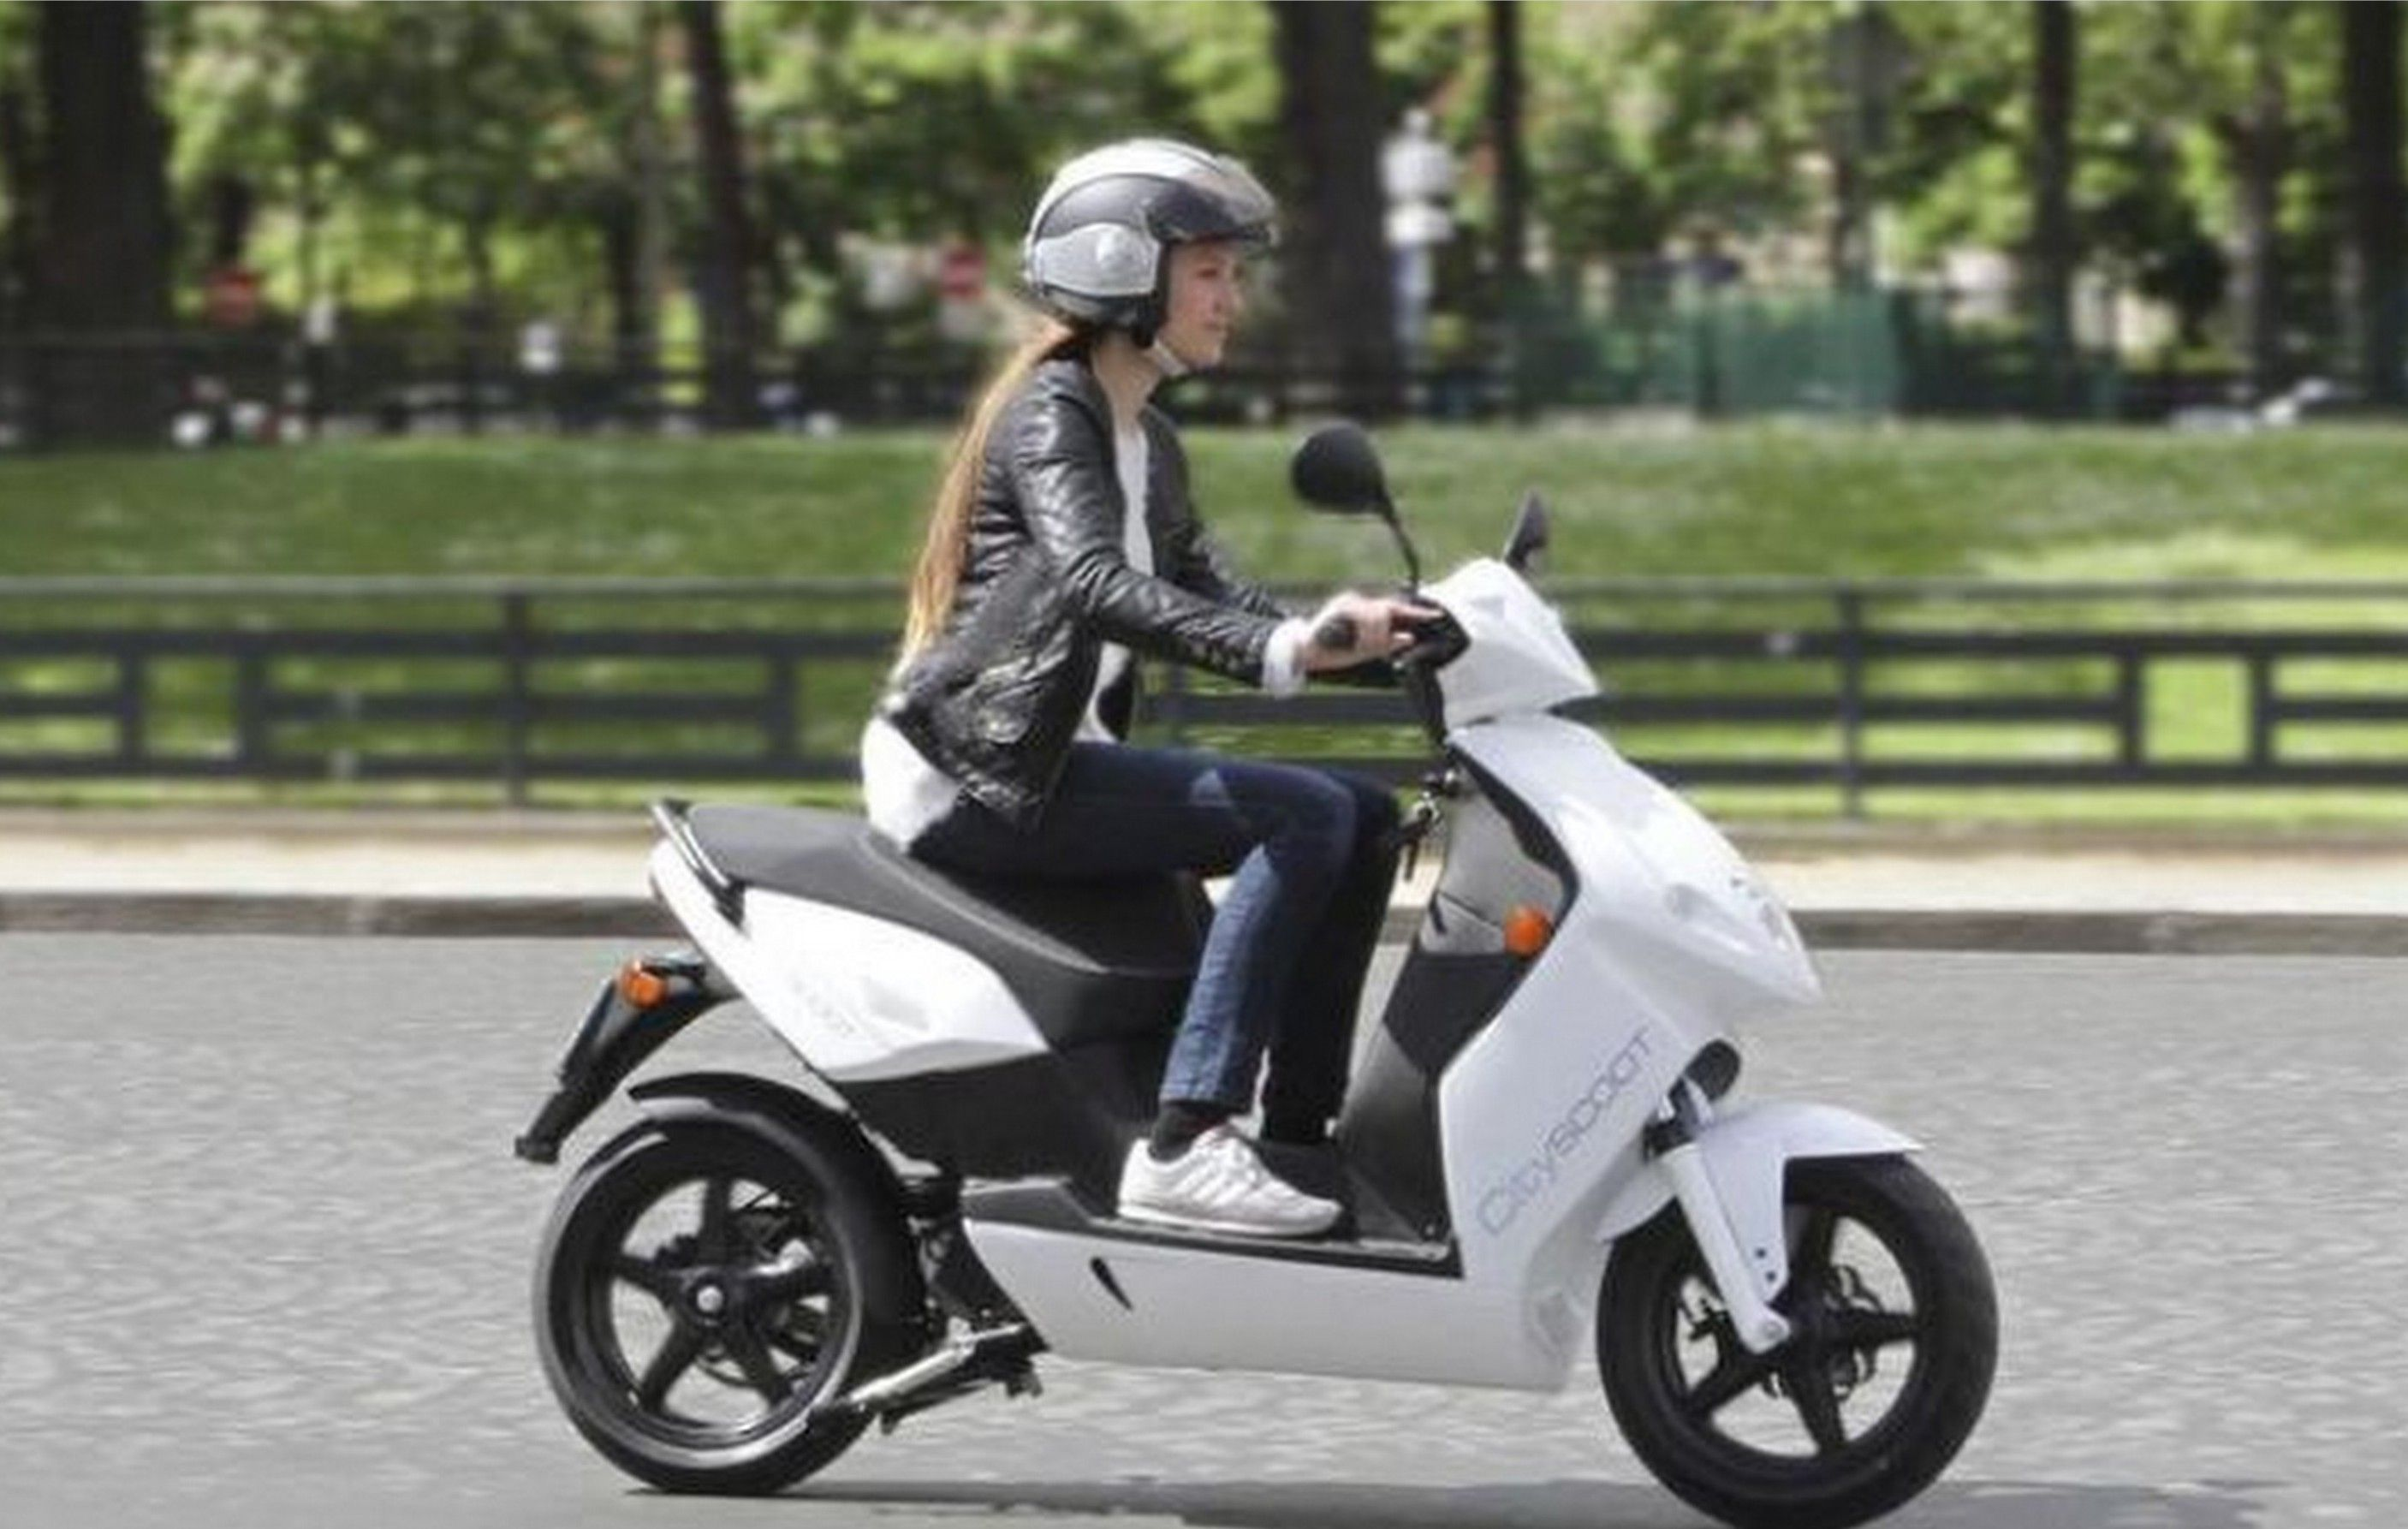 Private service Cityscoot (rental electric scooters) will become available for locals and visitors of Paris in June!